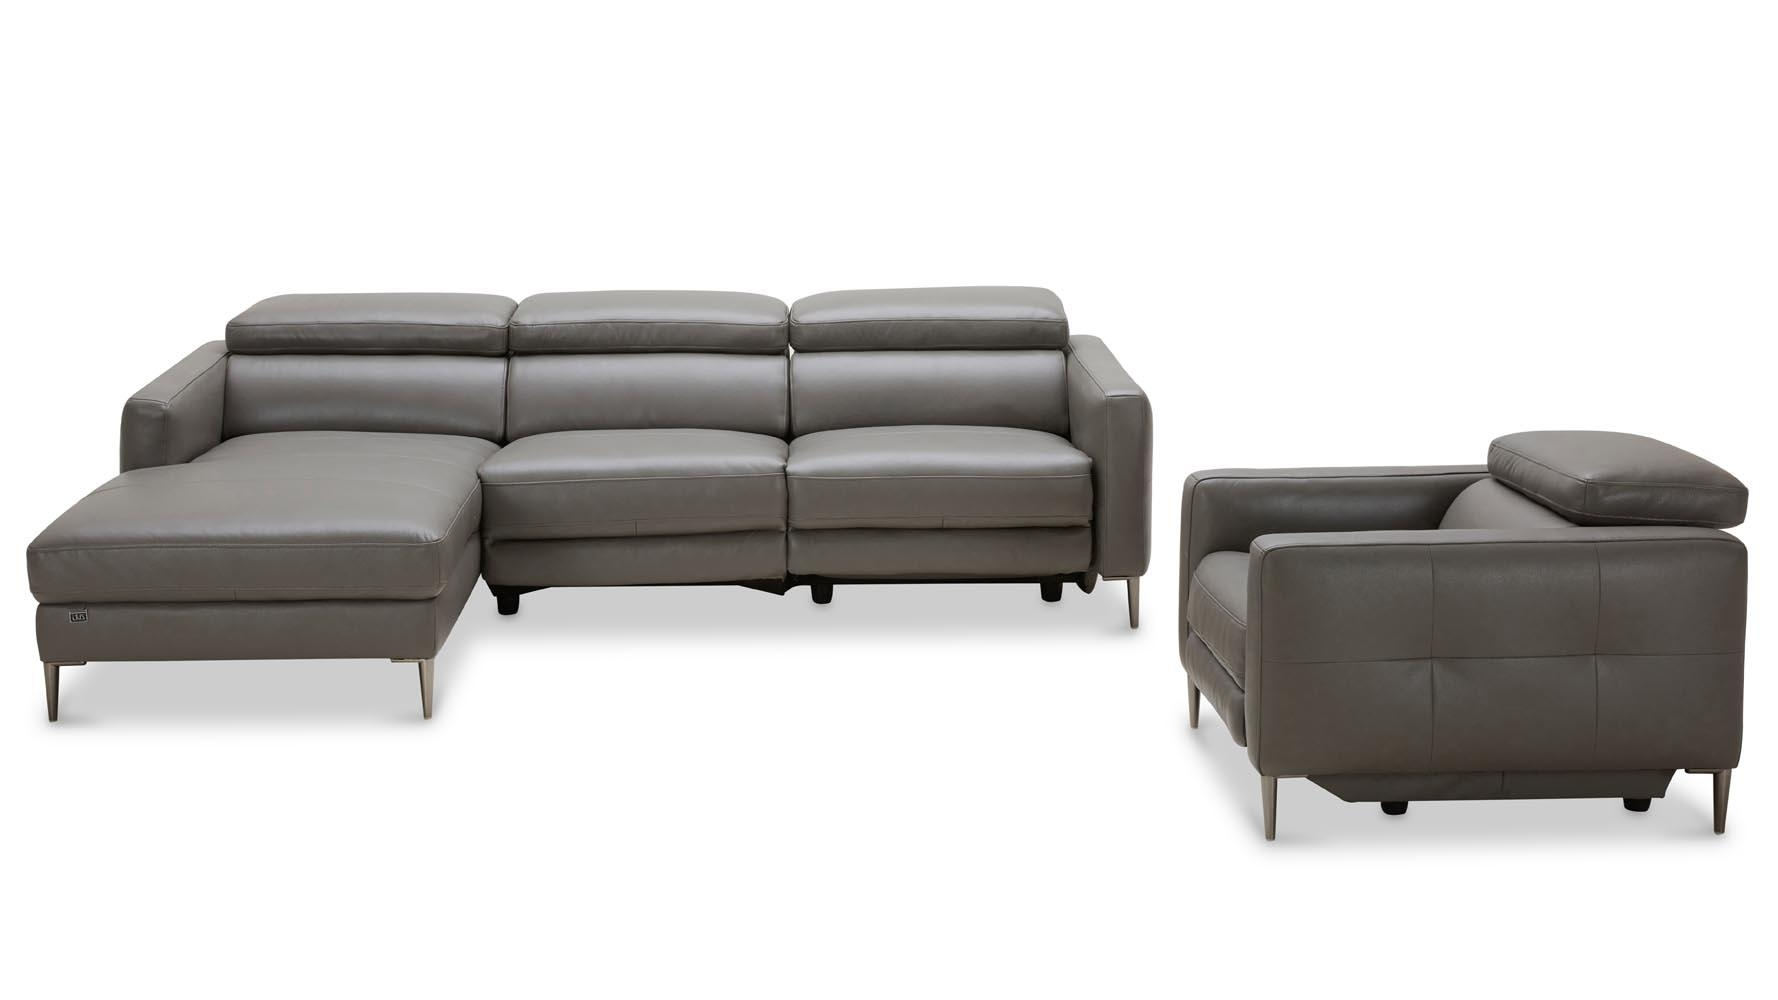 Modern Grey Leather Reno Sectional With Arm Chair | Zuri Furniture Throughout Modern Reclining Sectional (View 8 of 20)